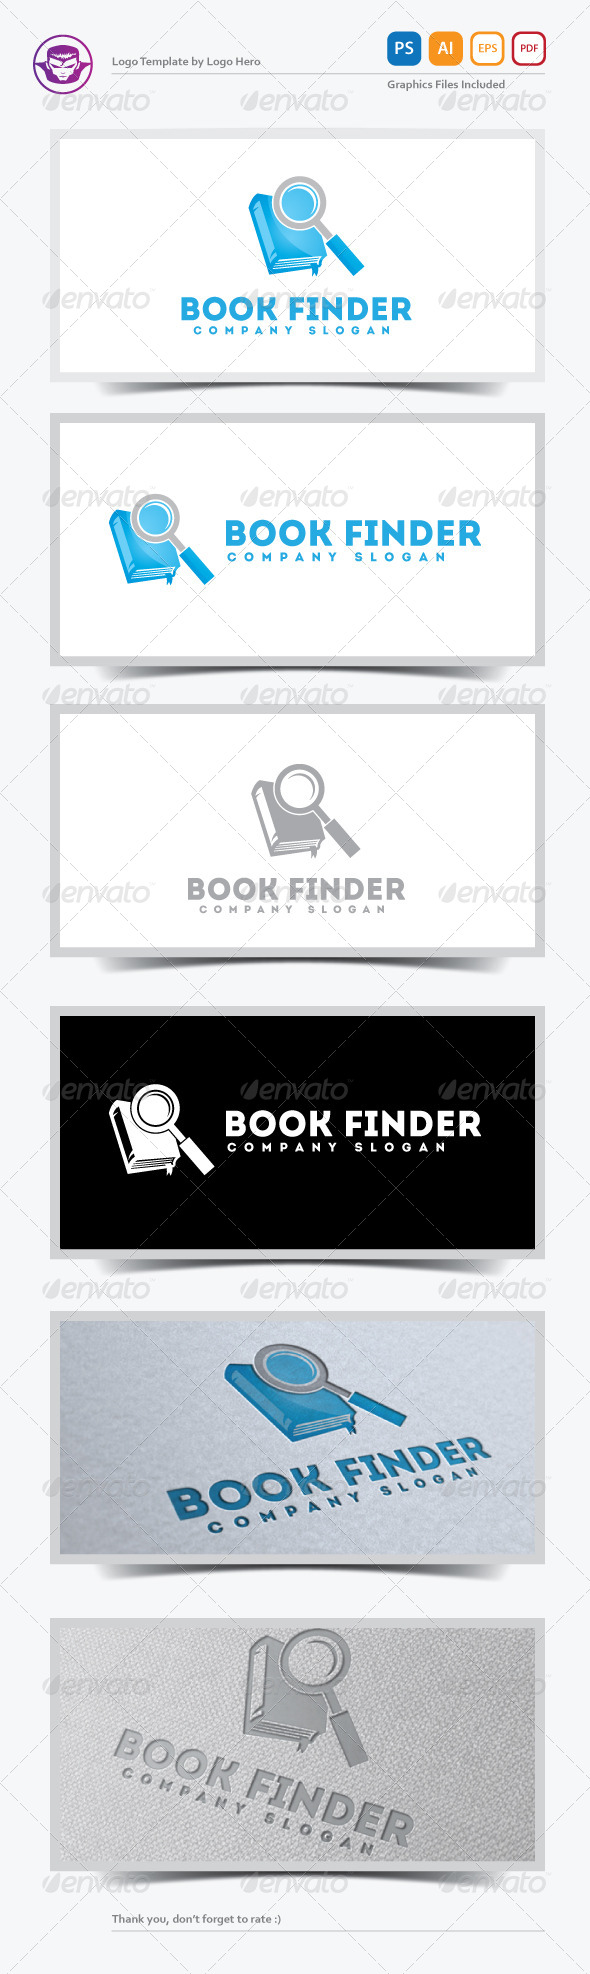 Book Finder Logo Template